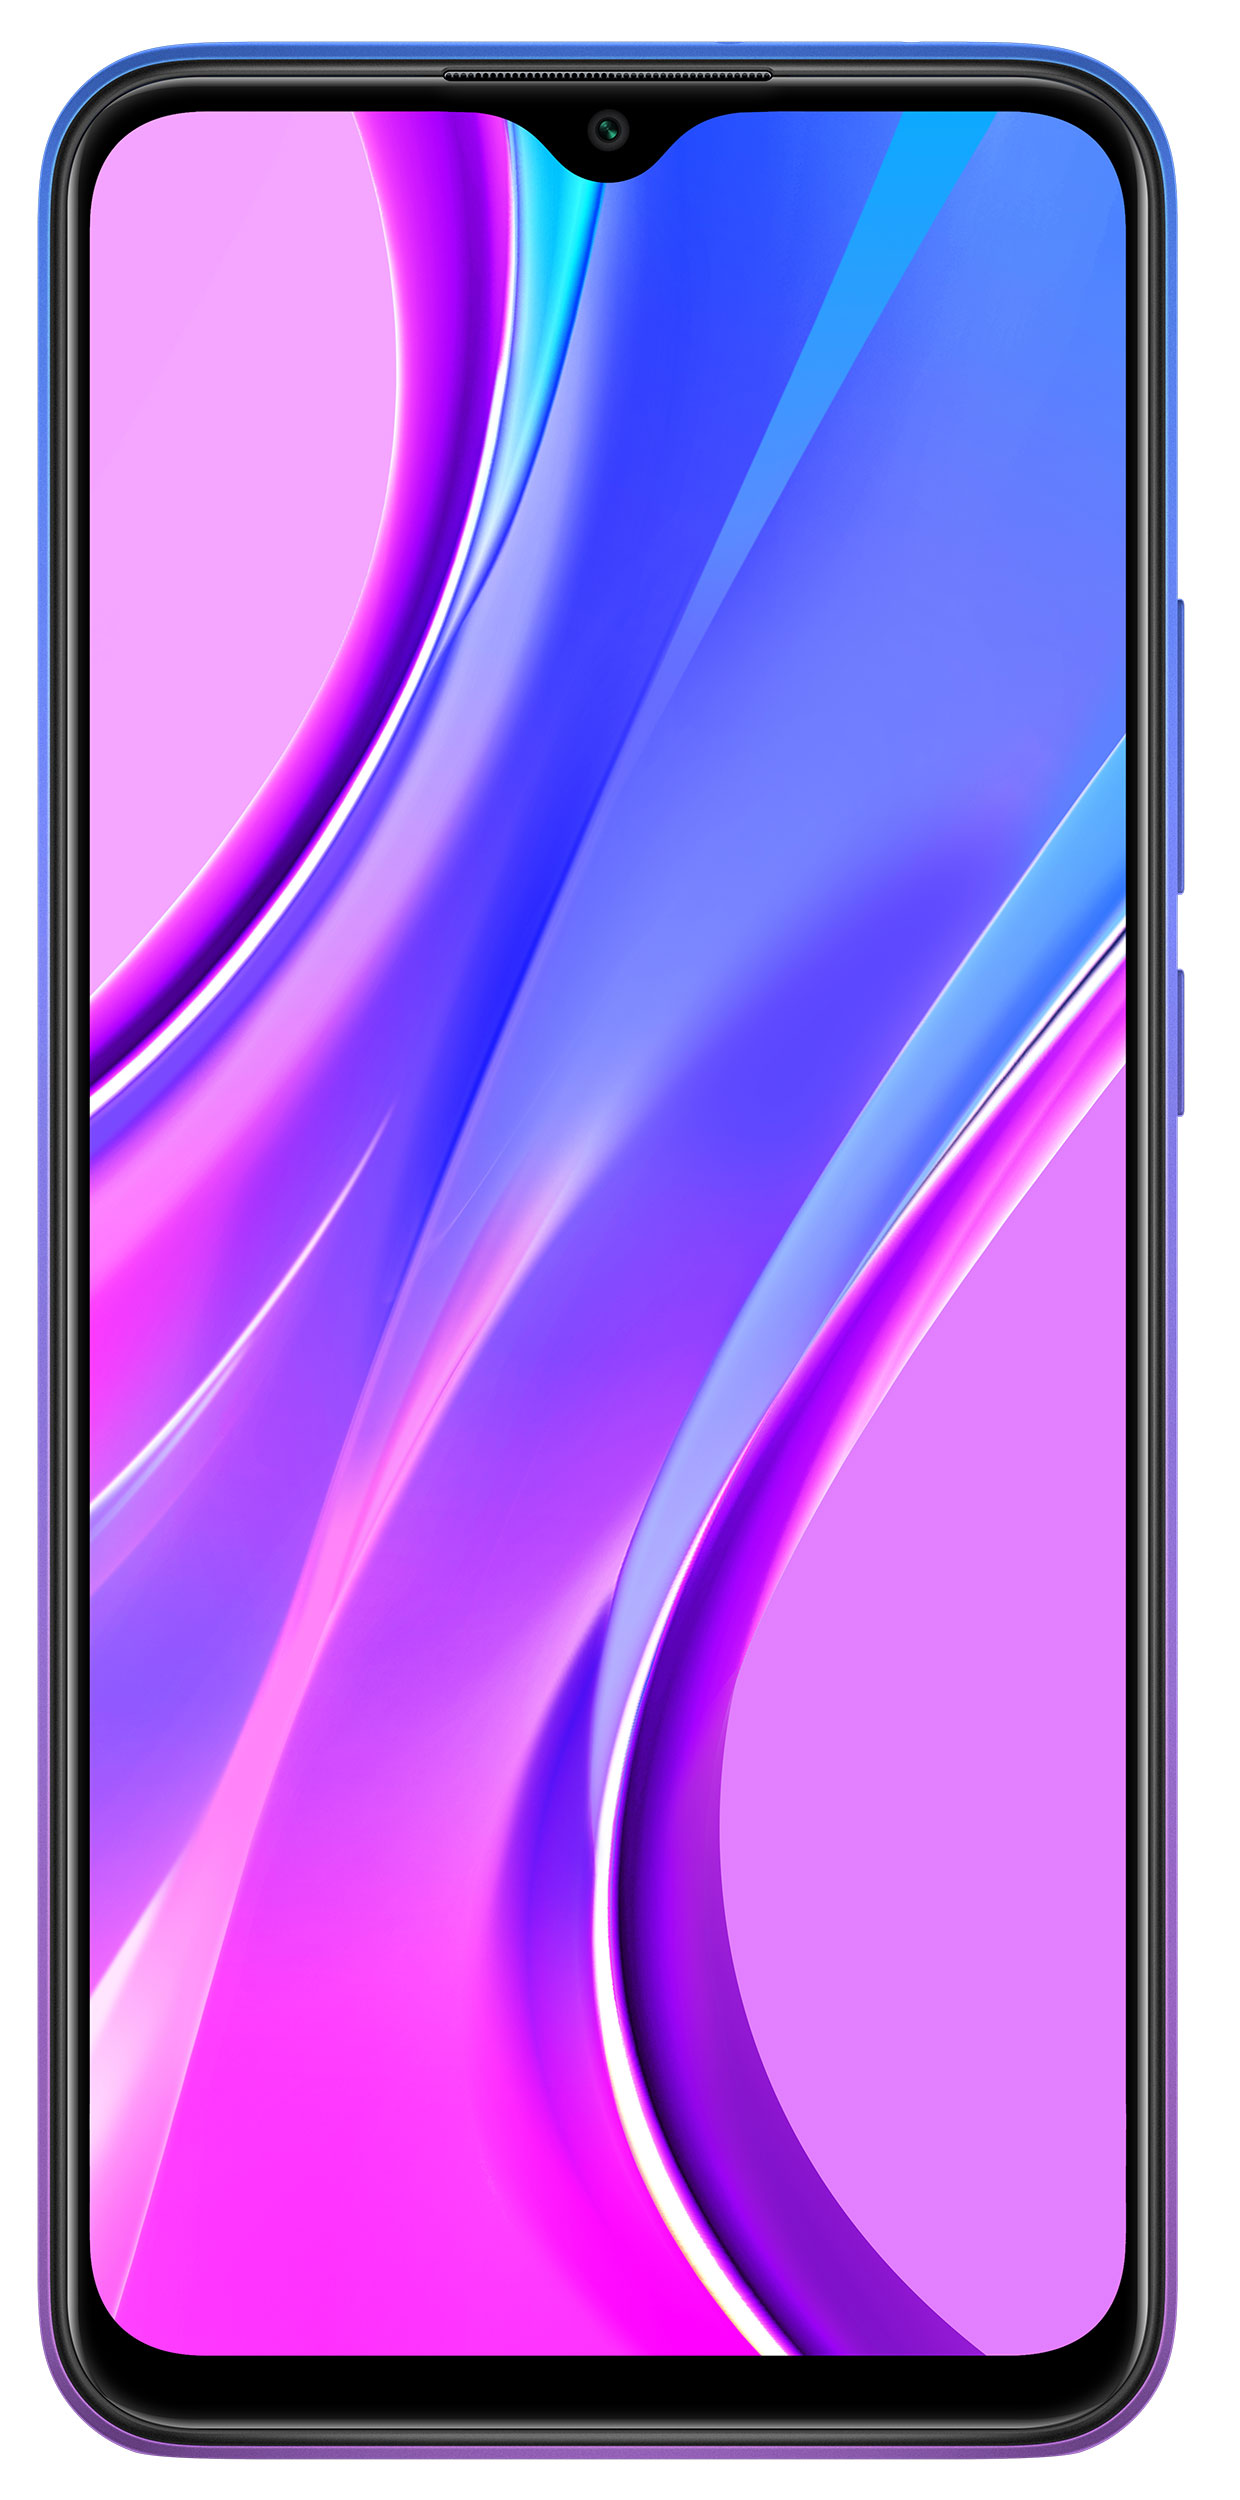 Redmi 9 okostelefon (Global) - 3+32GB, Naplemente lila